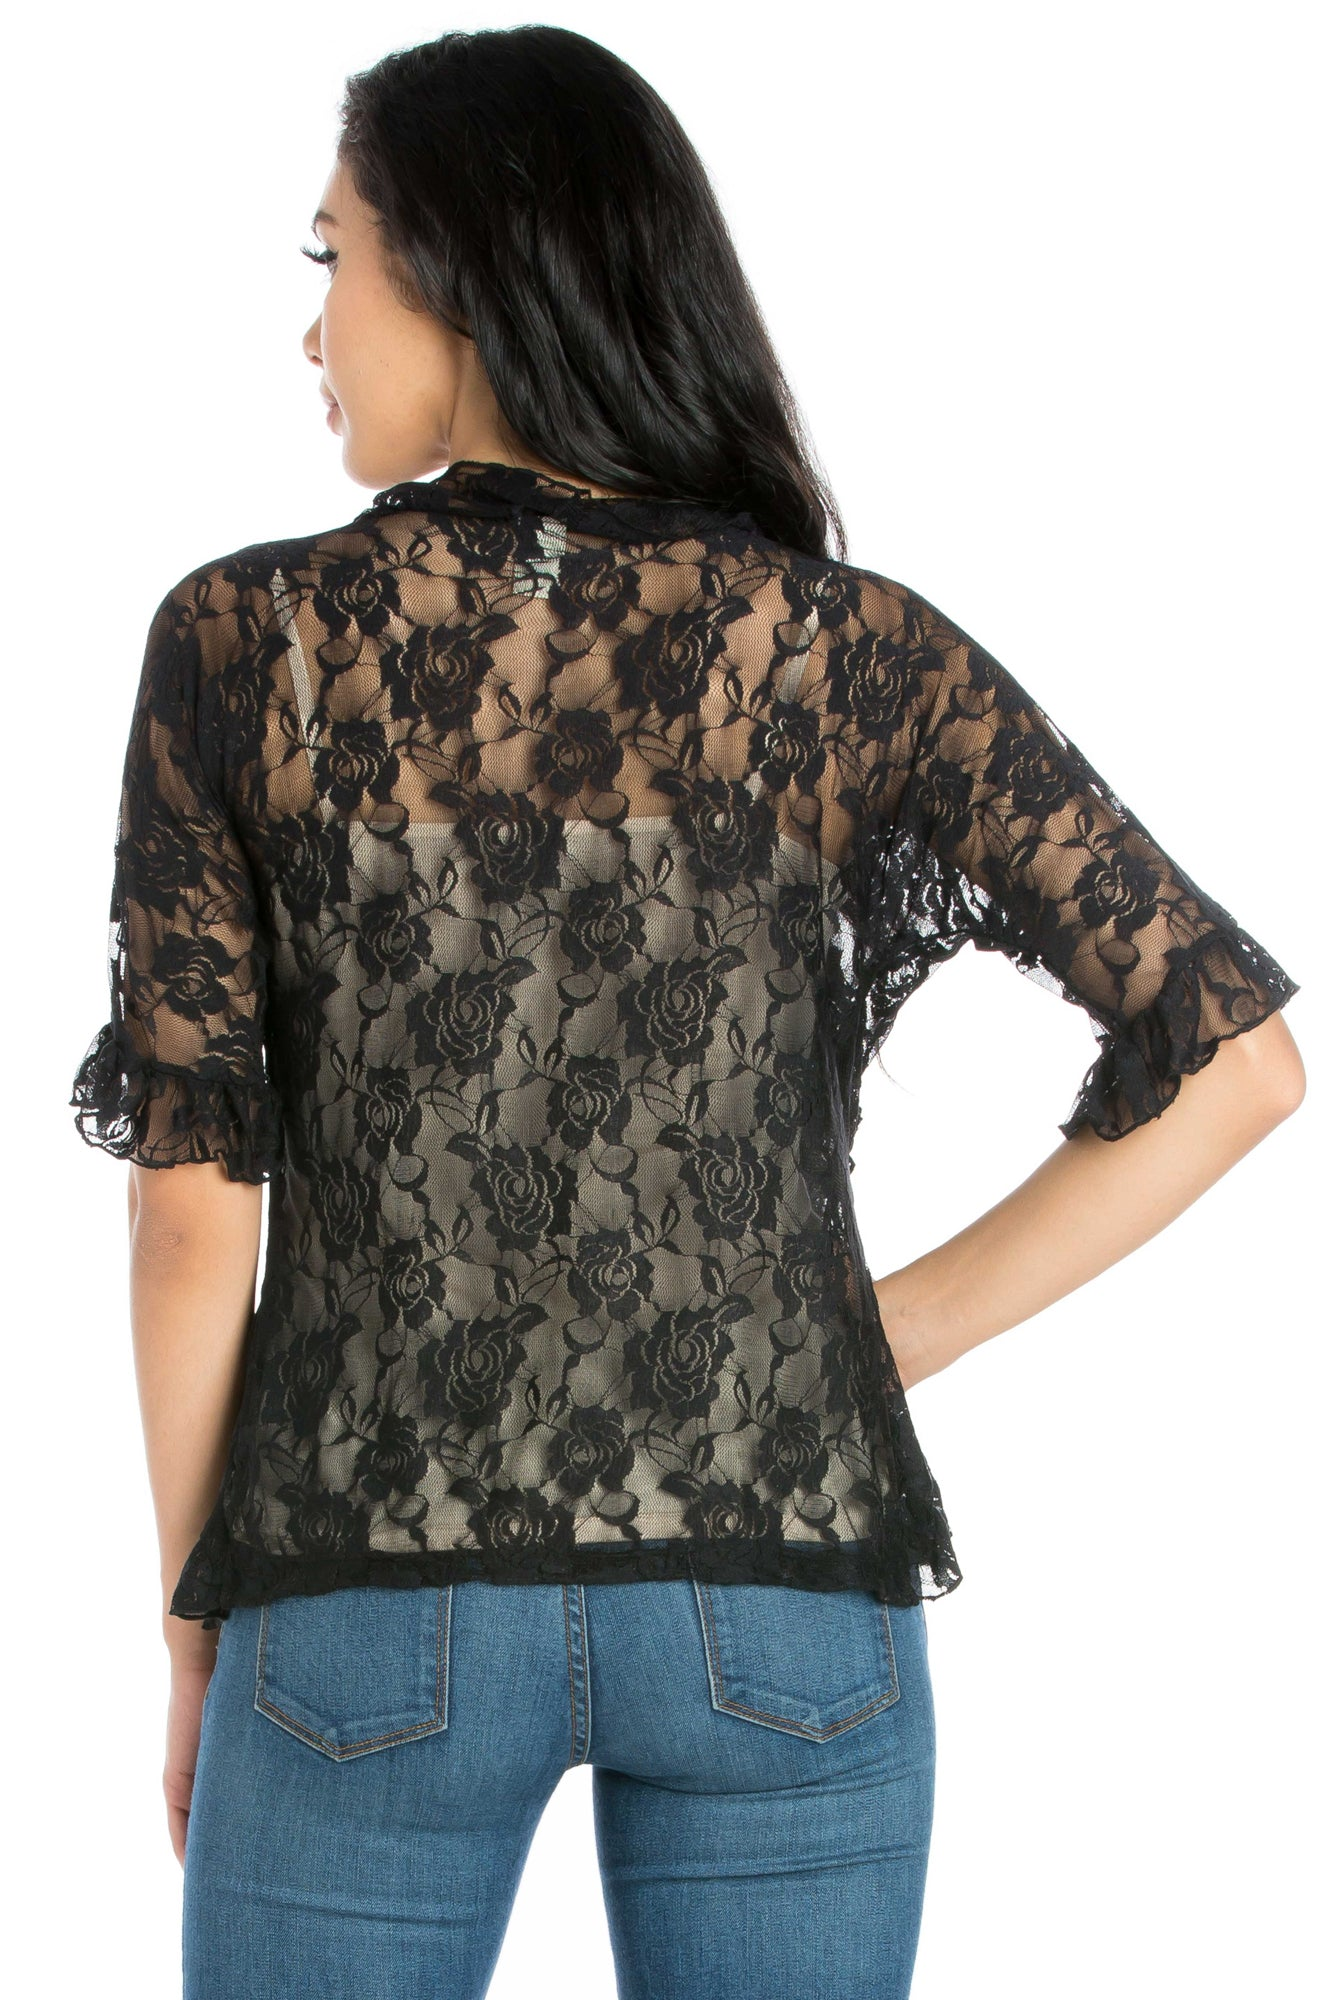 24seven Comfort Apparel Ruffle Black Lace Bolero Shrug